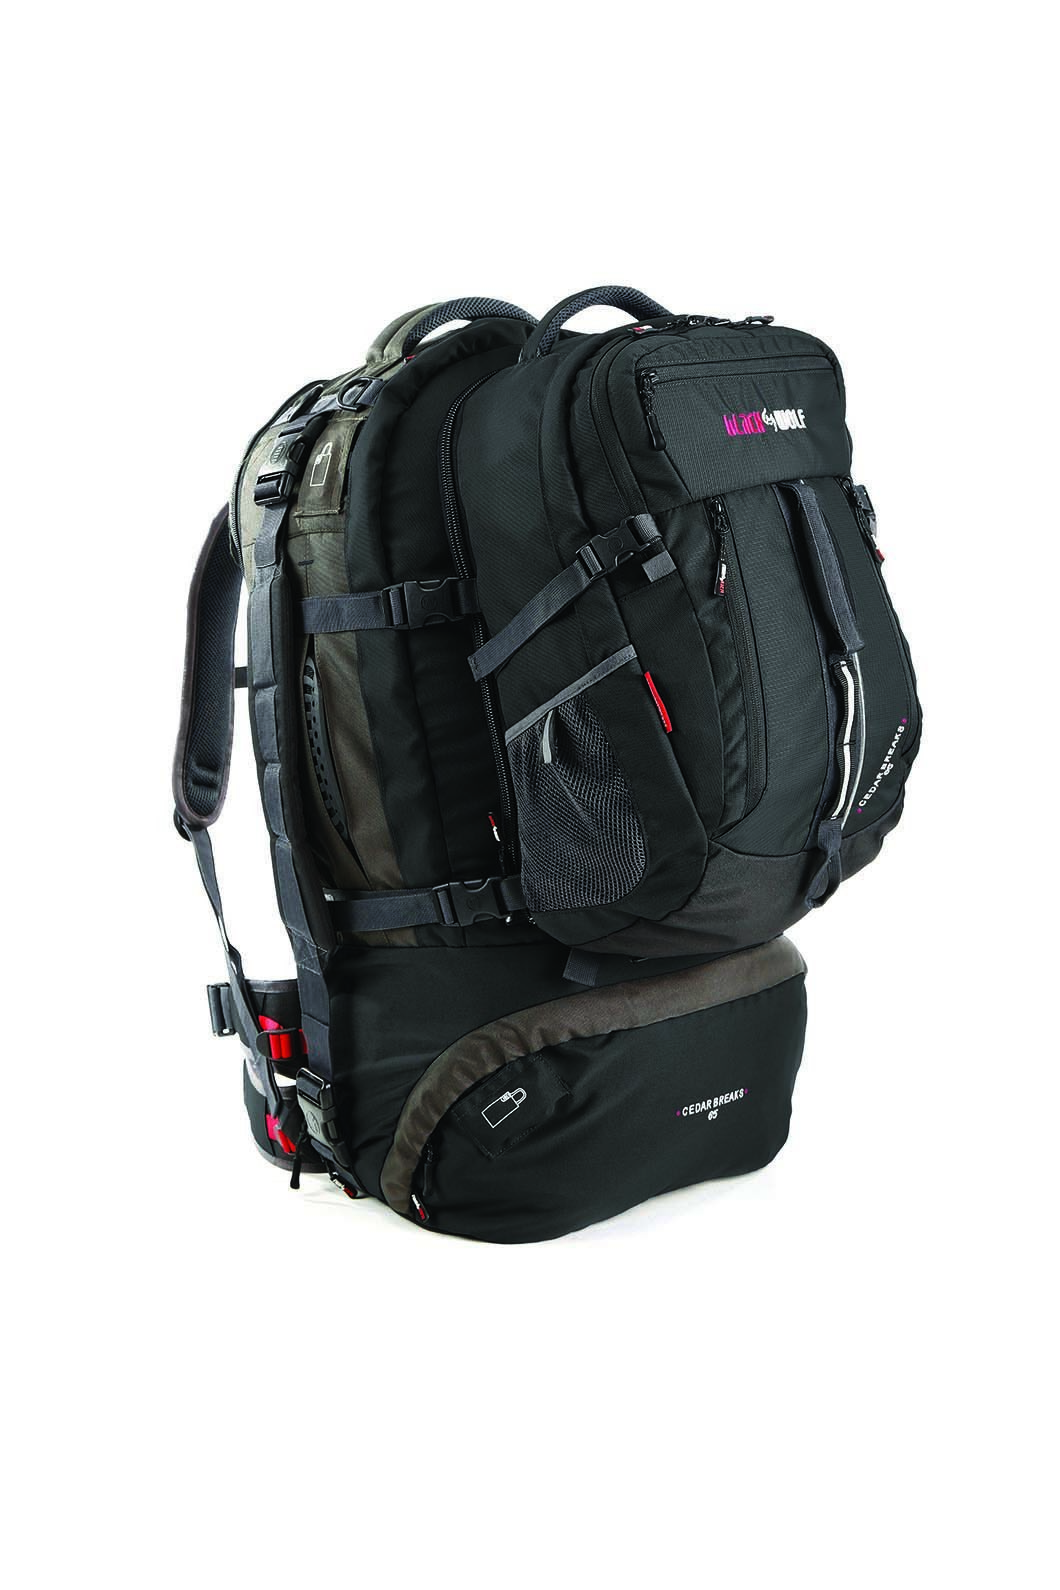 BlackWolf Cedar Breaks Travel Pack 65L5L, None, hi-res